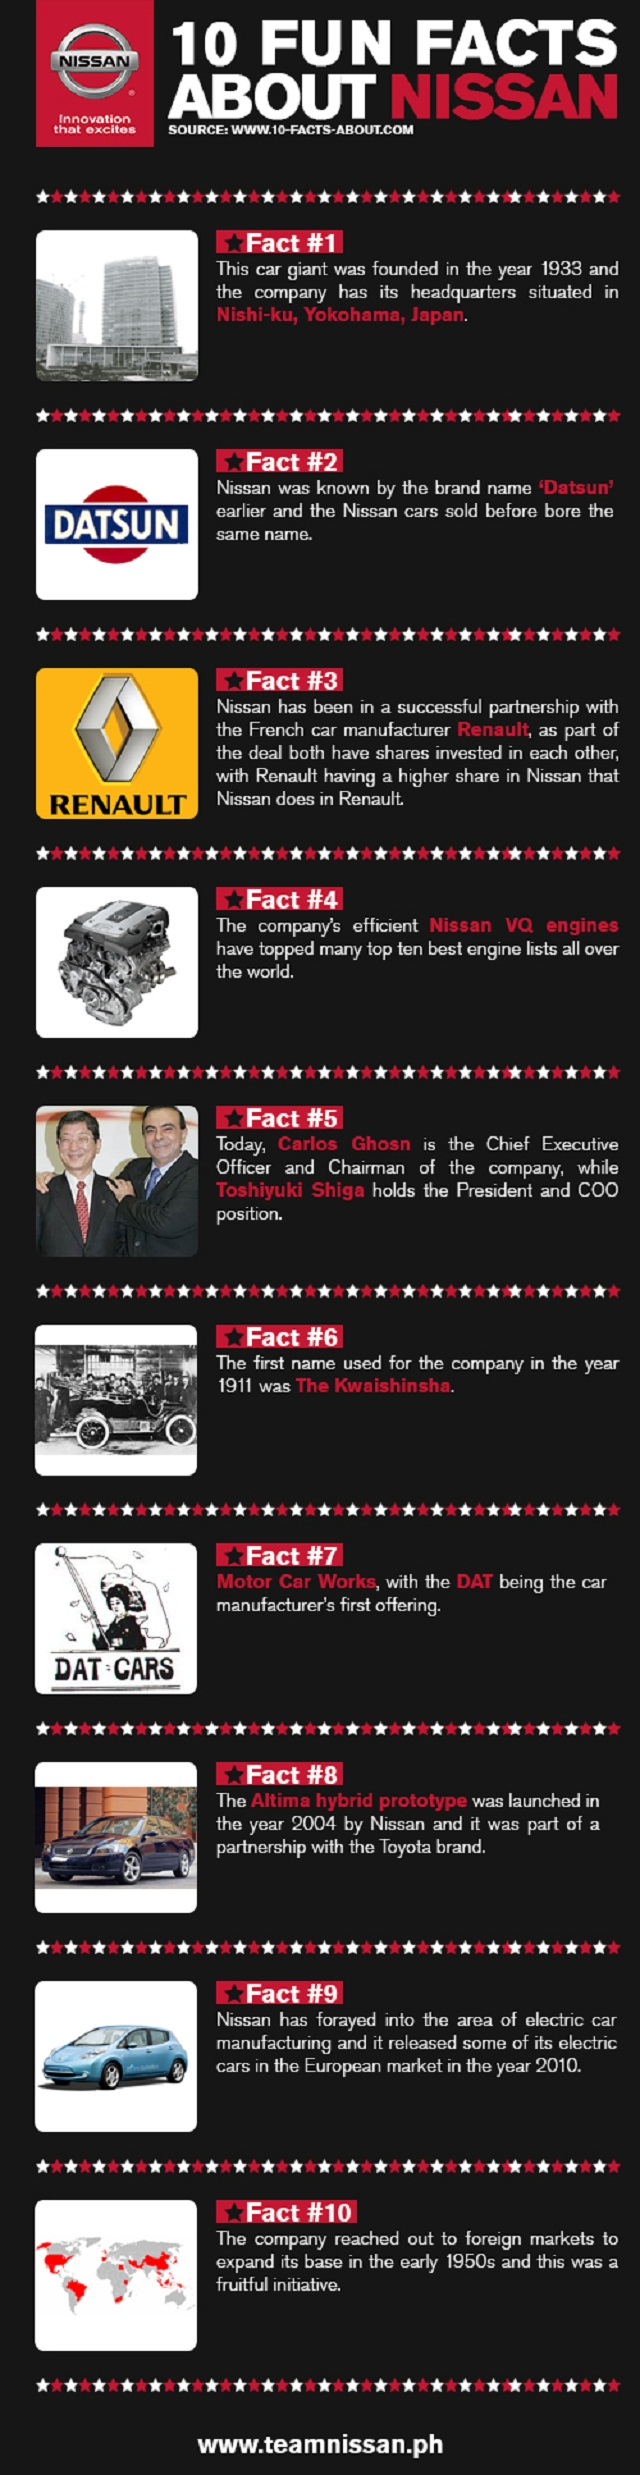 10 Fun Facts About Nissan Nissan Fun Facts Facts